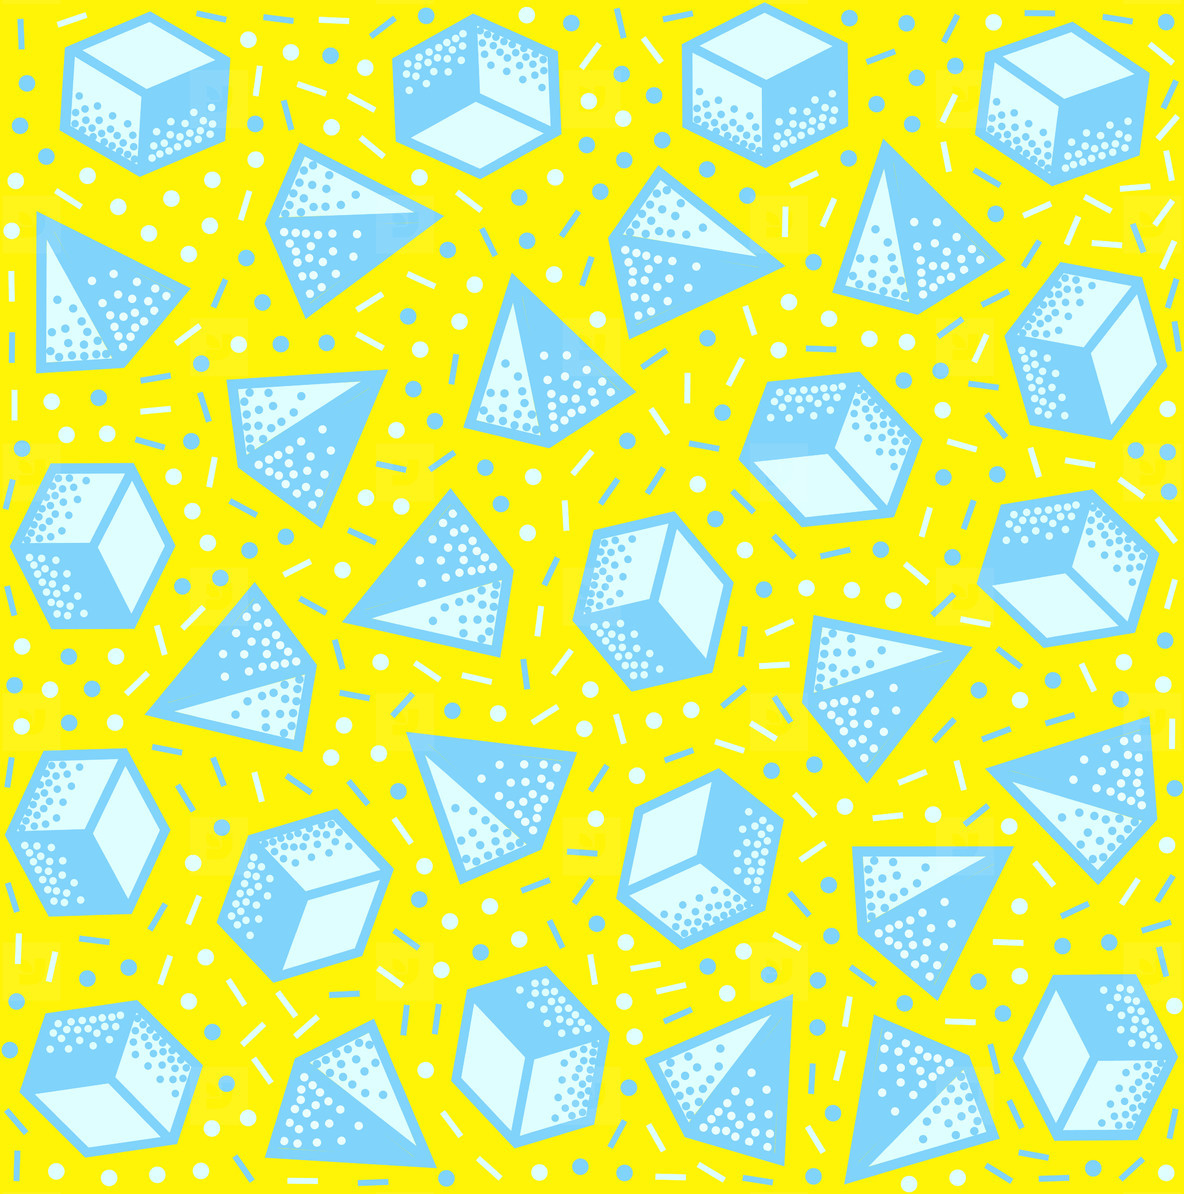 Repeating geometric vector pattern